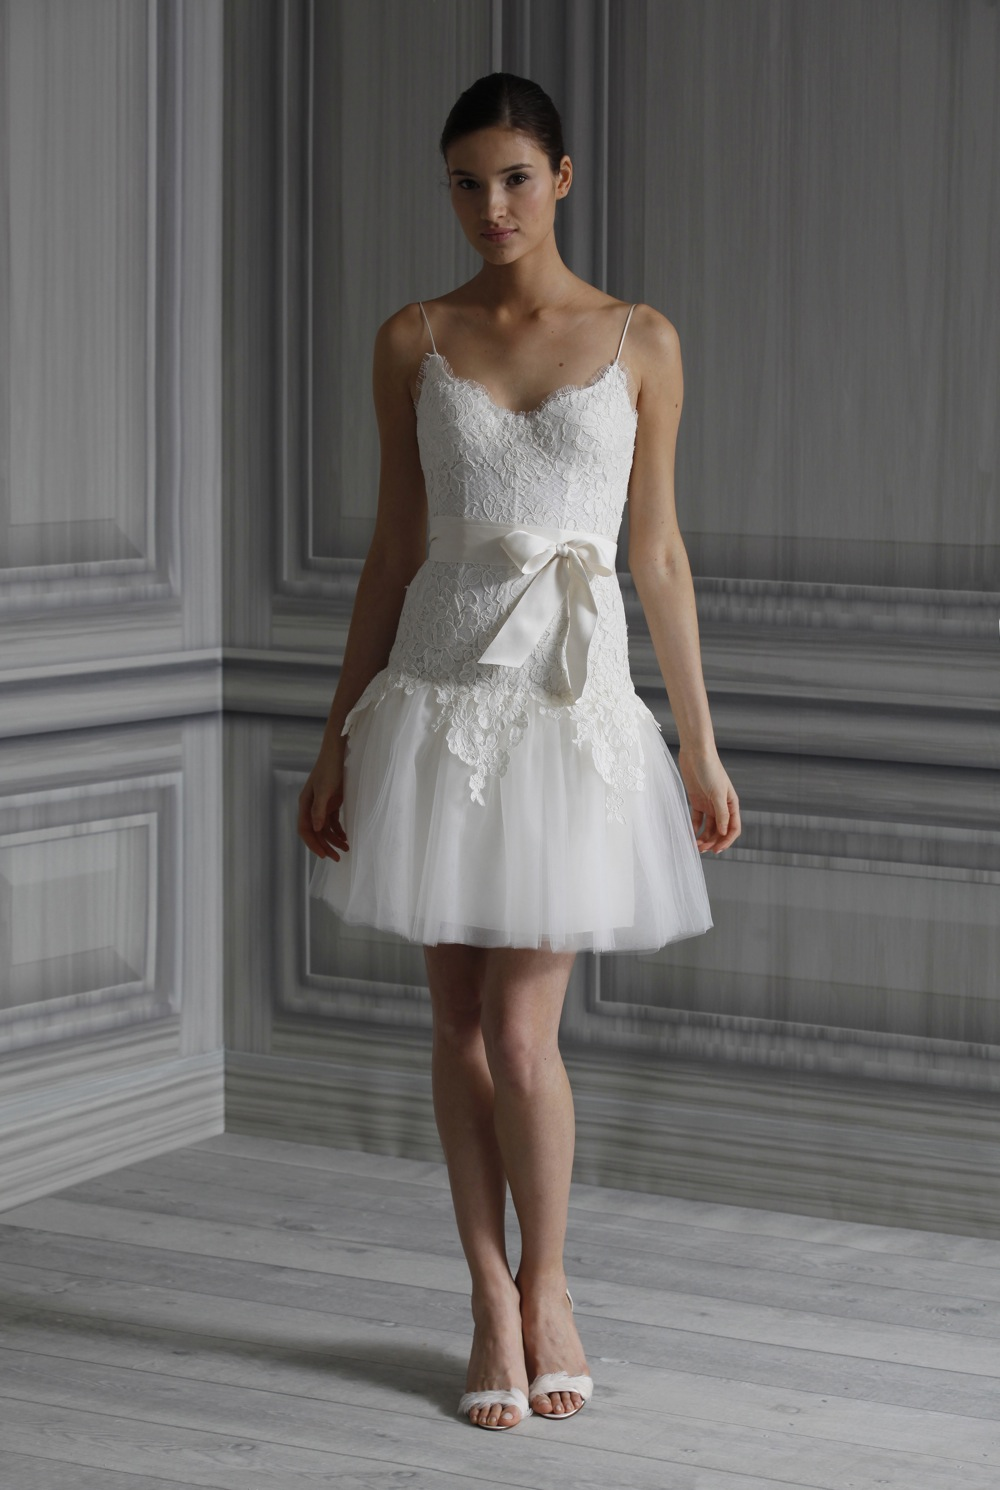 Wedding-dress-monique-lhuillier-bridal-gowns-spring-2012-ballet.original